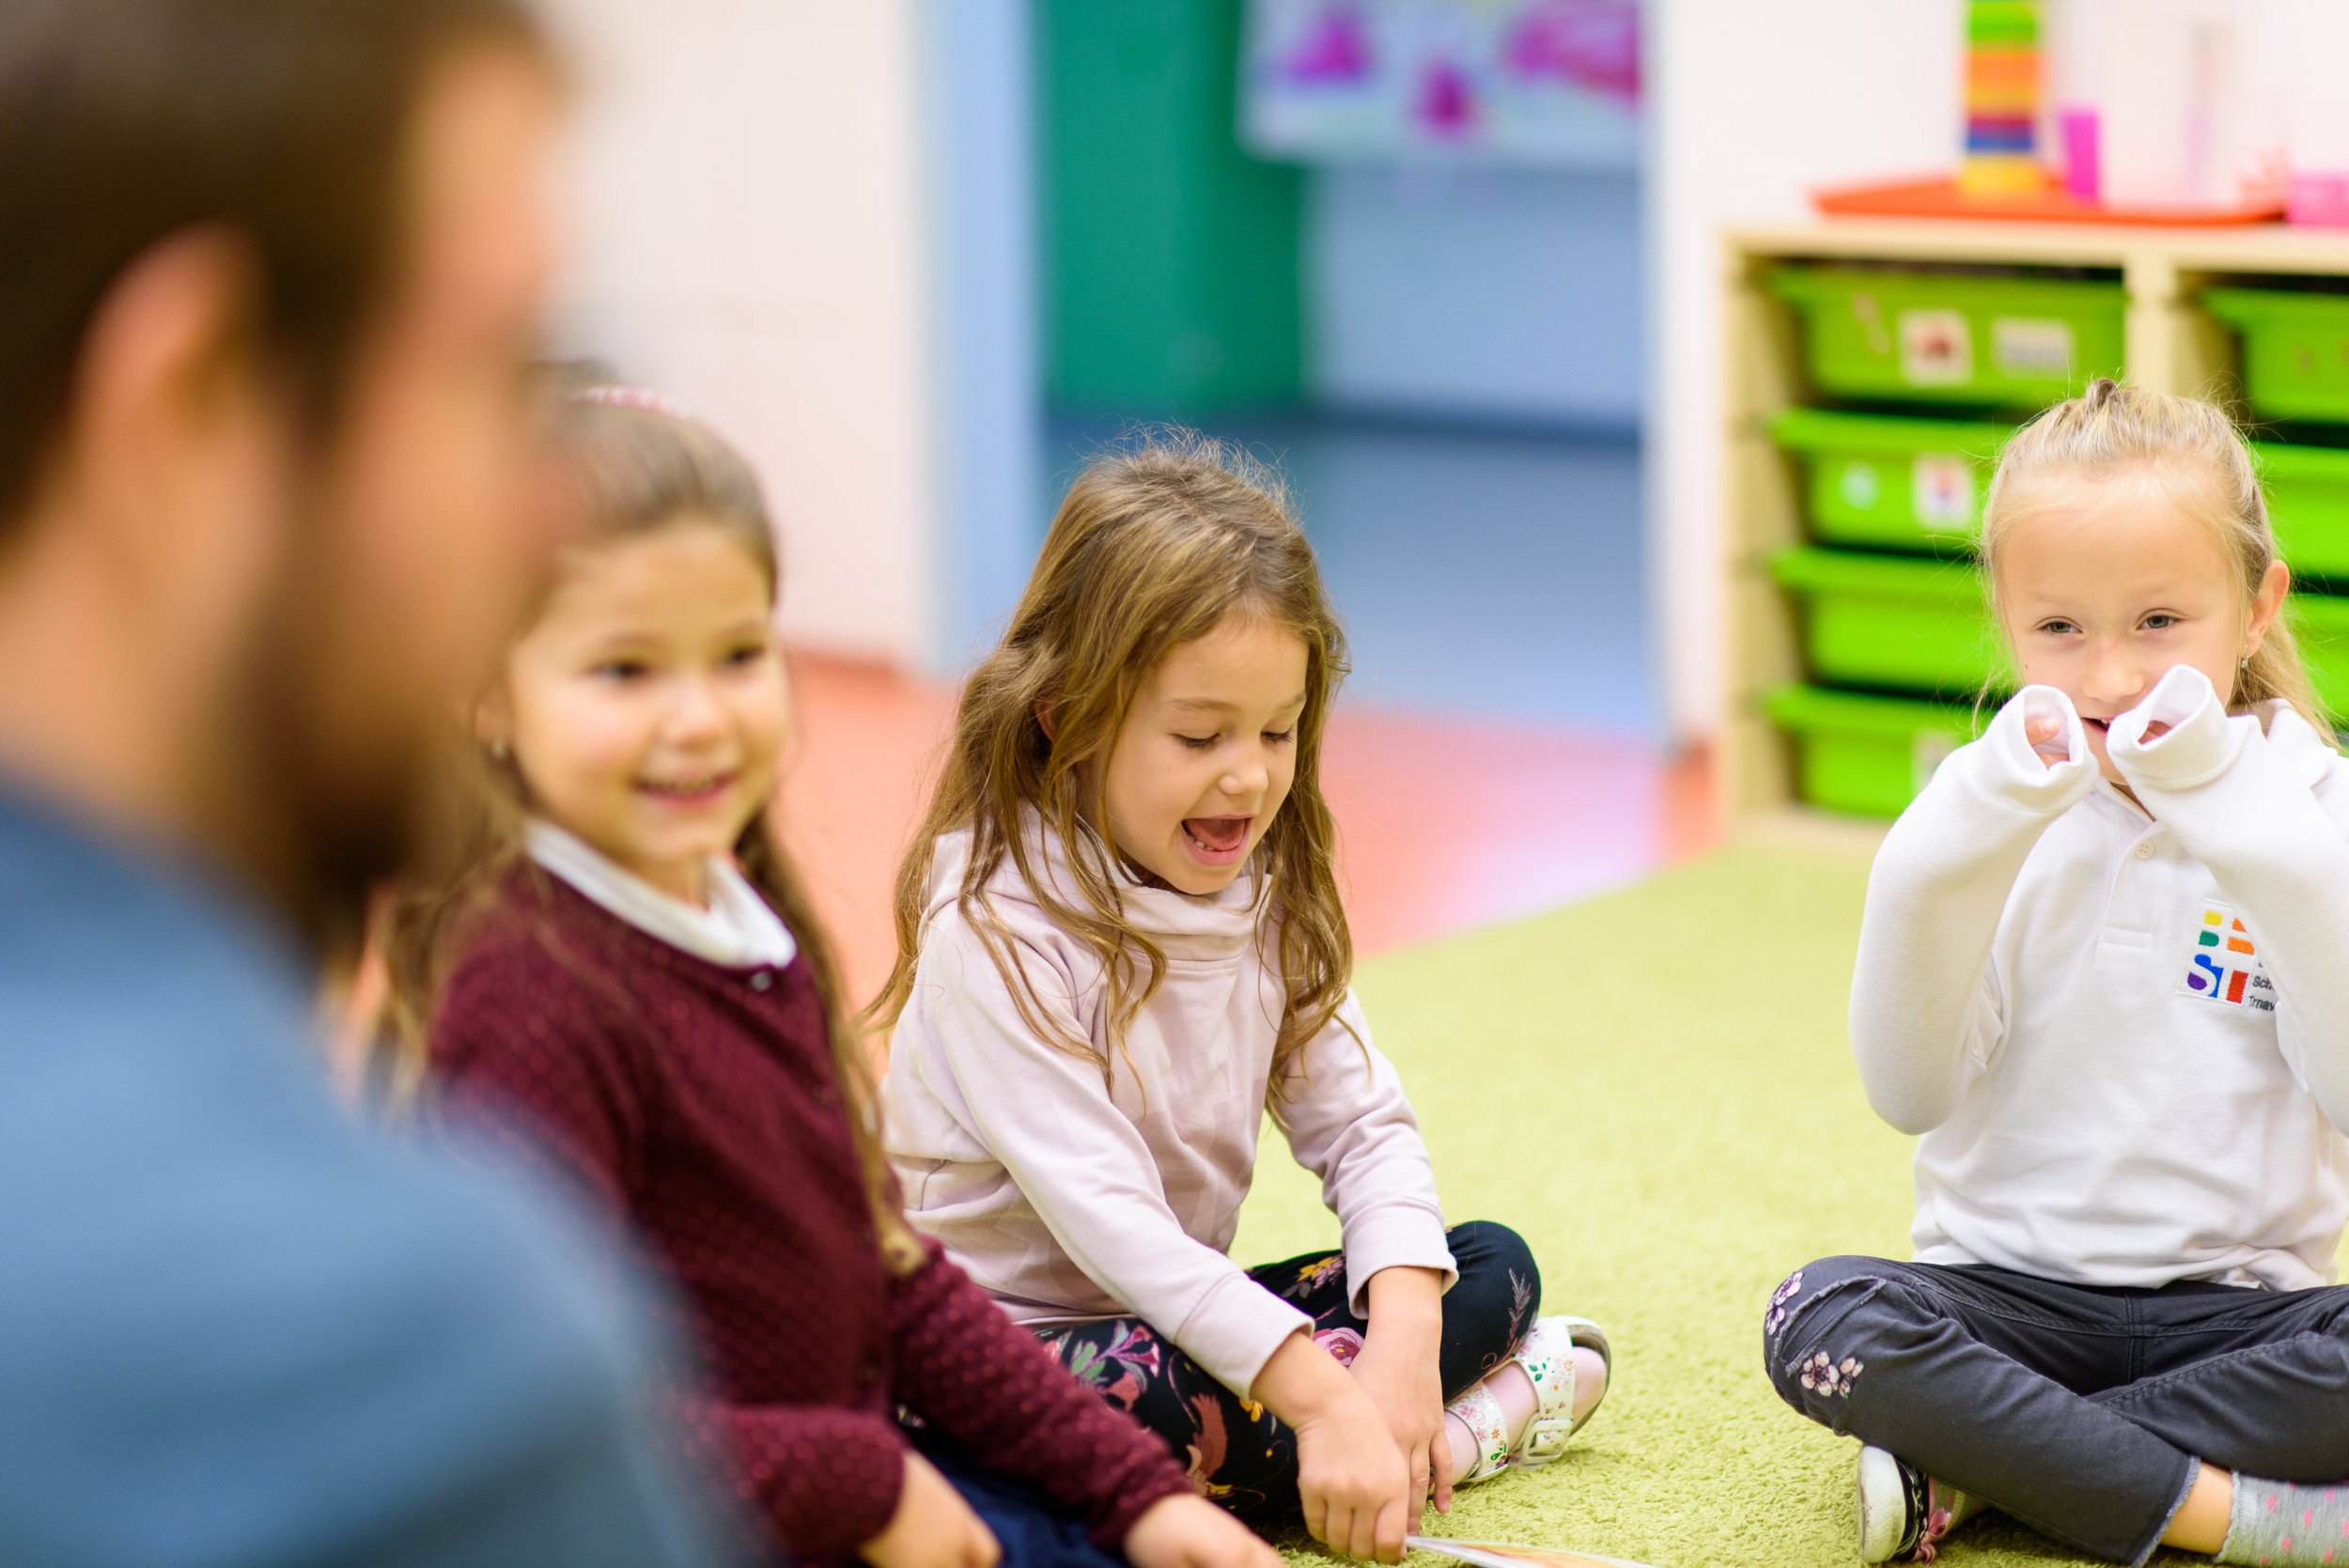 Bilingual education - In our kindergarten we have established an environment in which one teacher in each classroom communicates in Slovak and the other in English language.